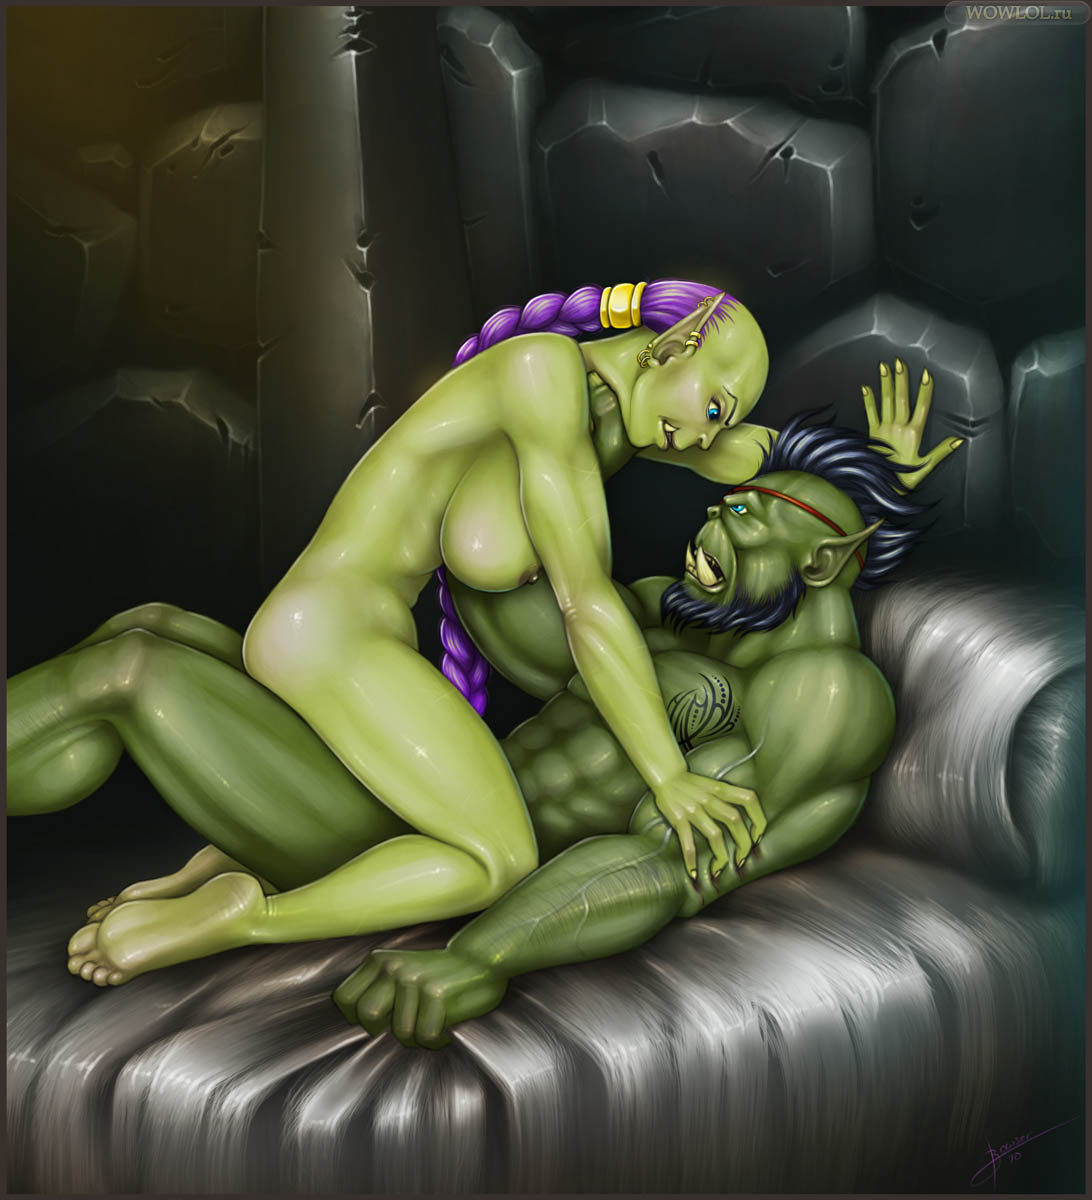 World of warcraft orc sex s porn clips